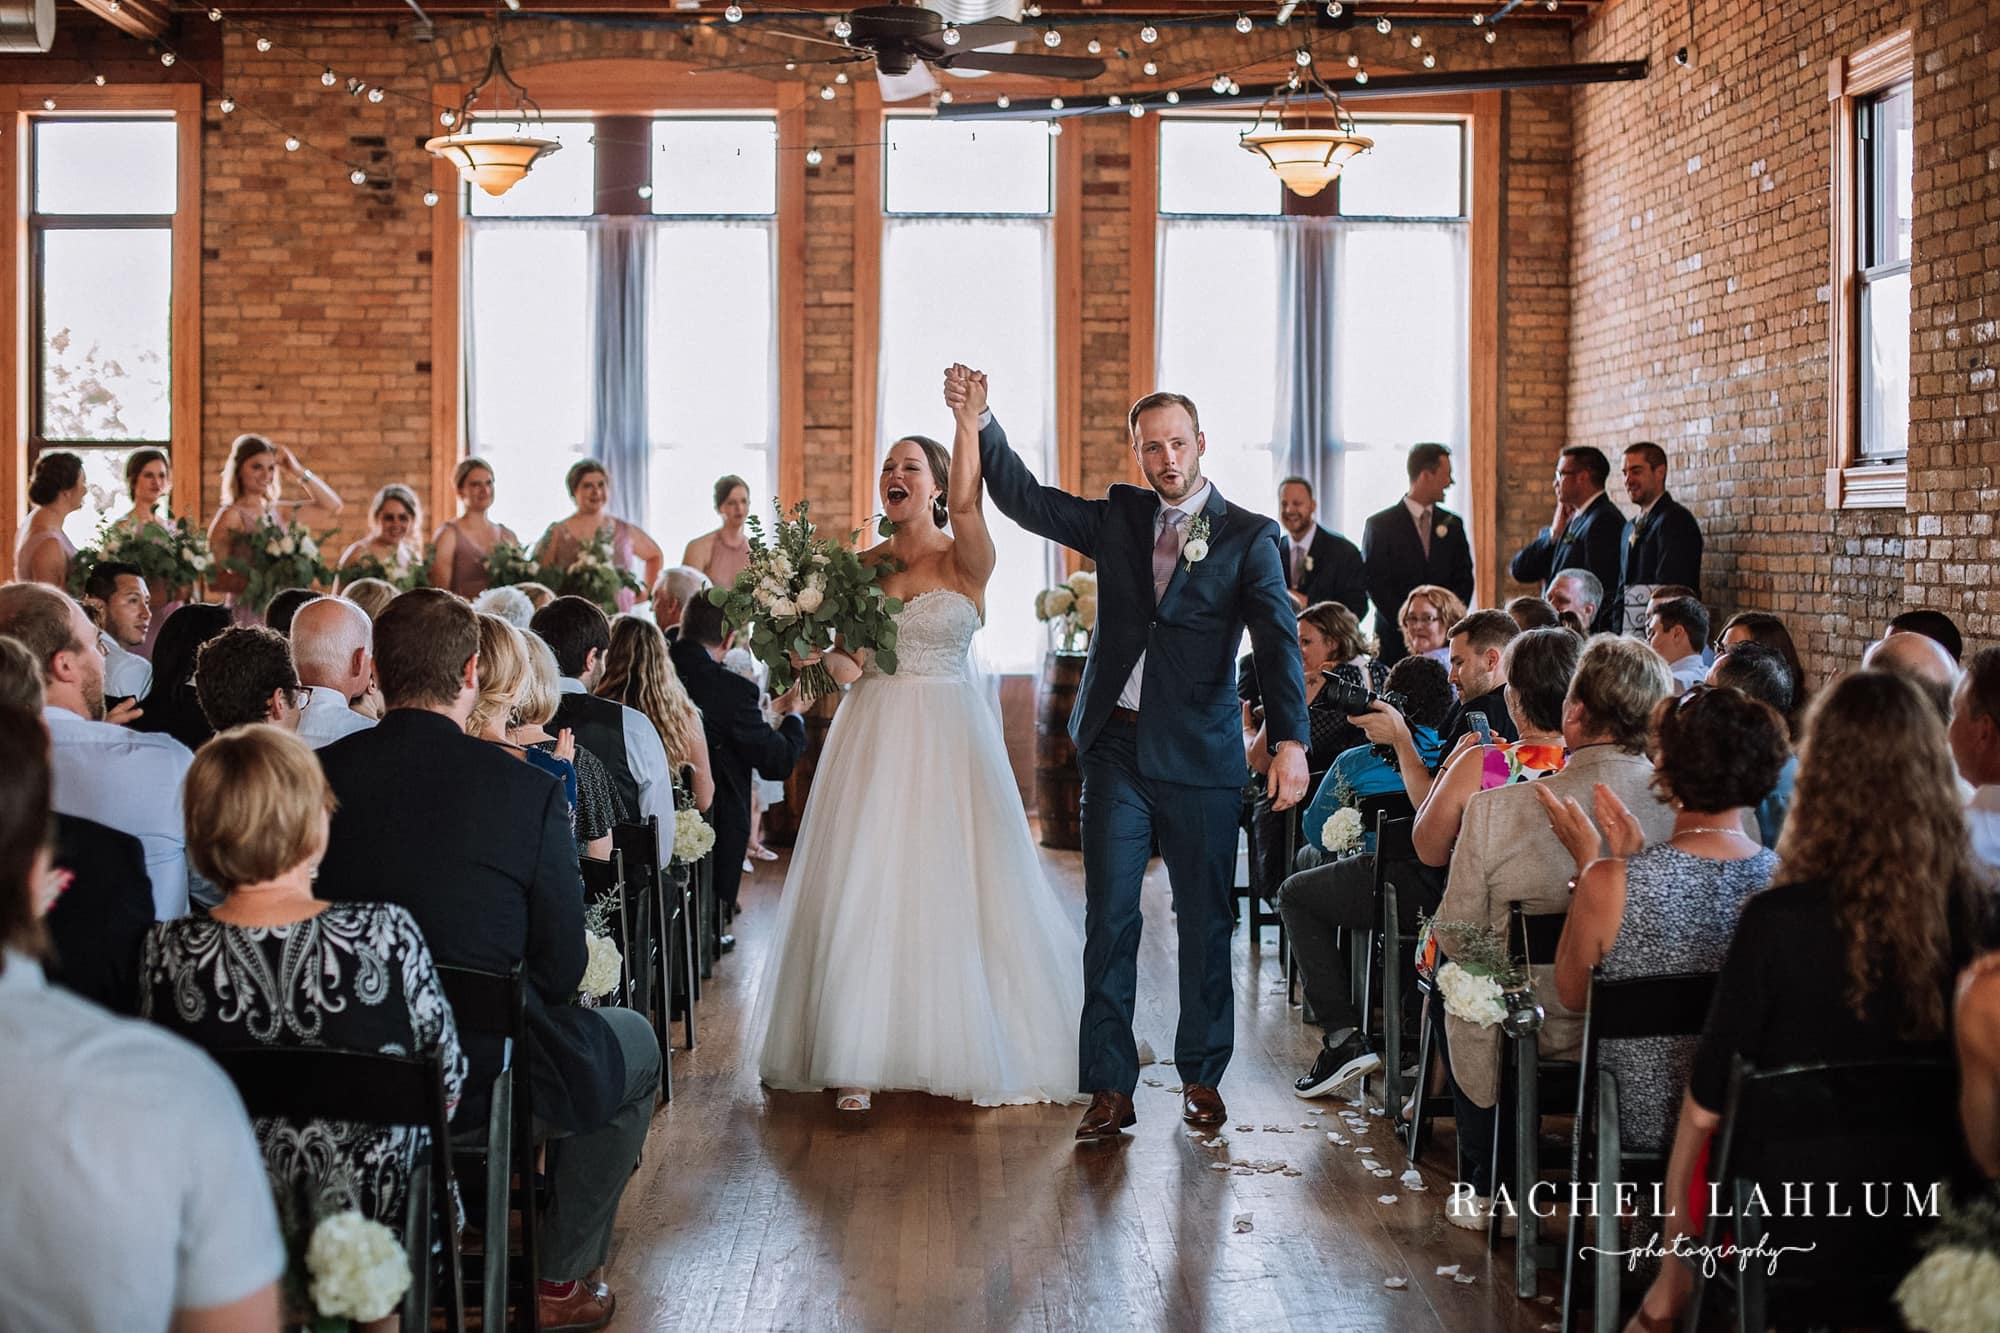 Bride and groom celebrate and walk down aisle at Day Block Event Center.